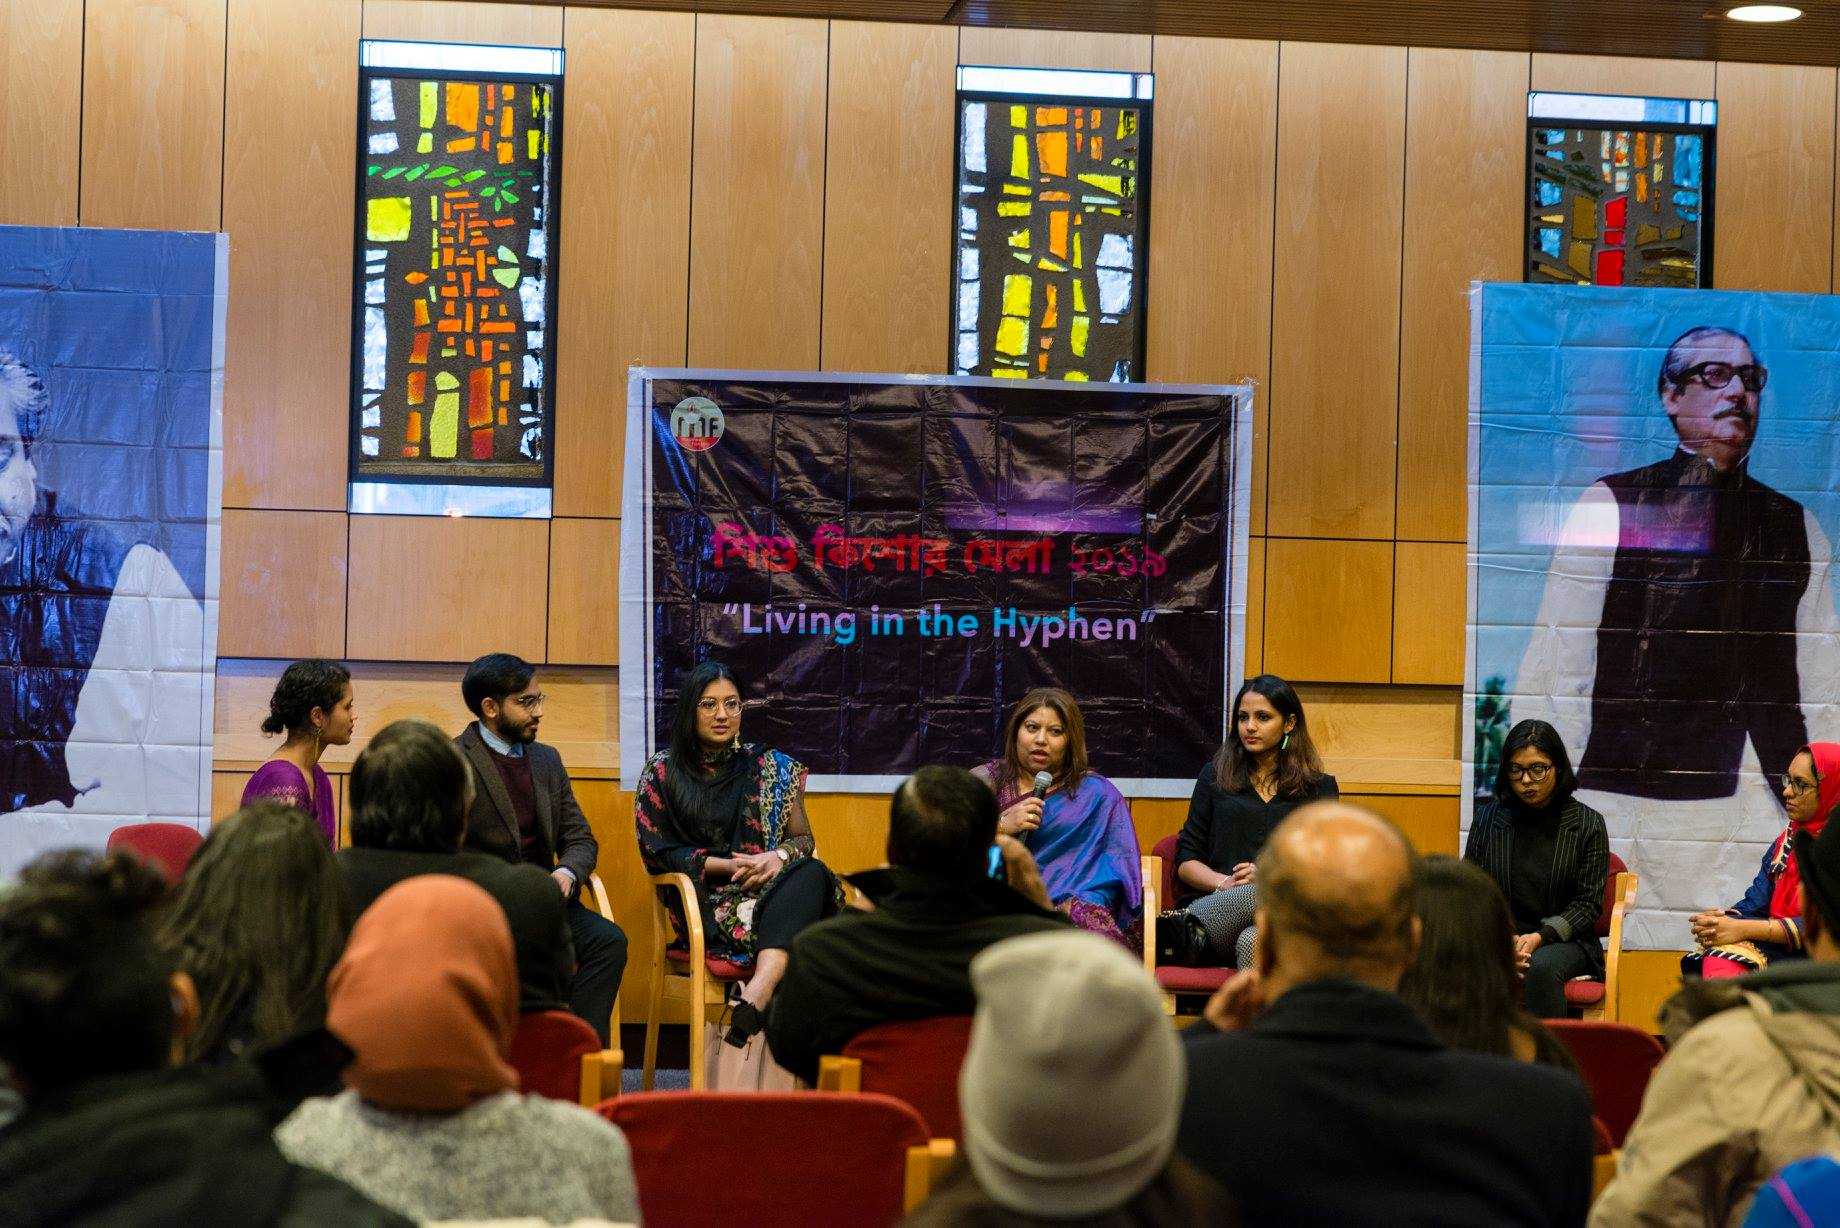 2020-ypf-panel-discussion-photo-by-wasi-ferdous-54728417